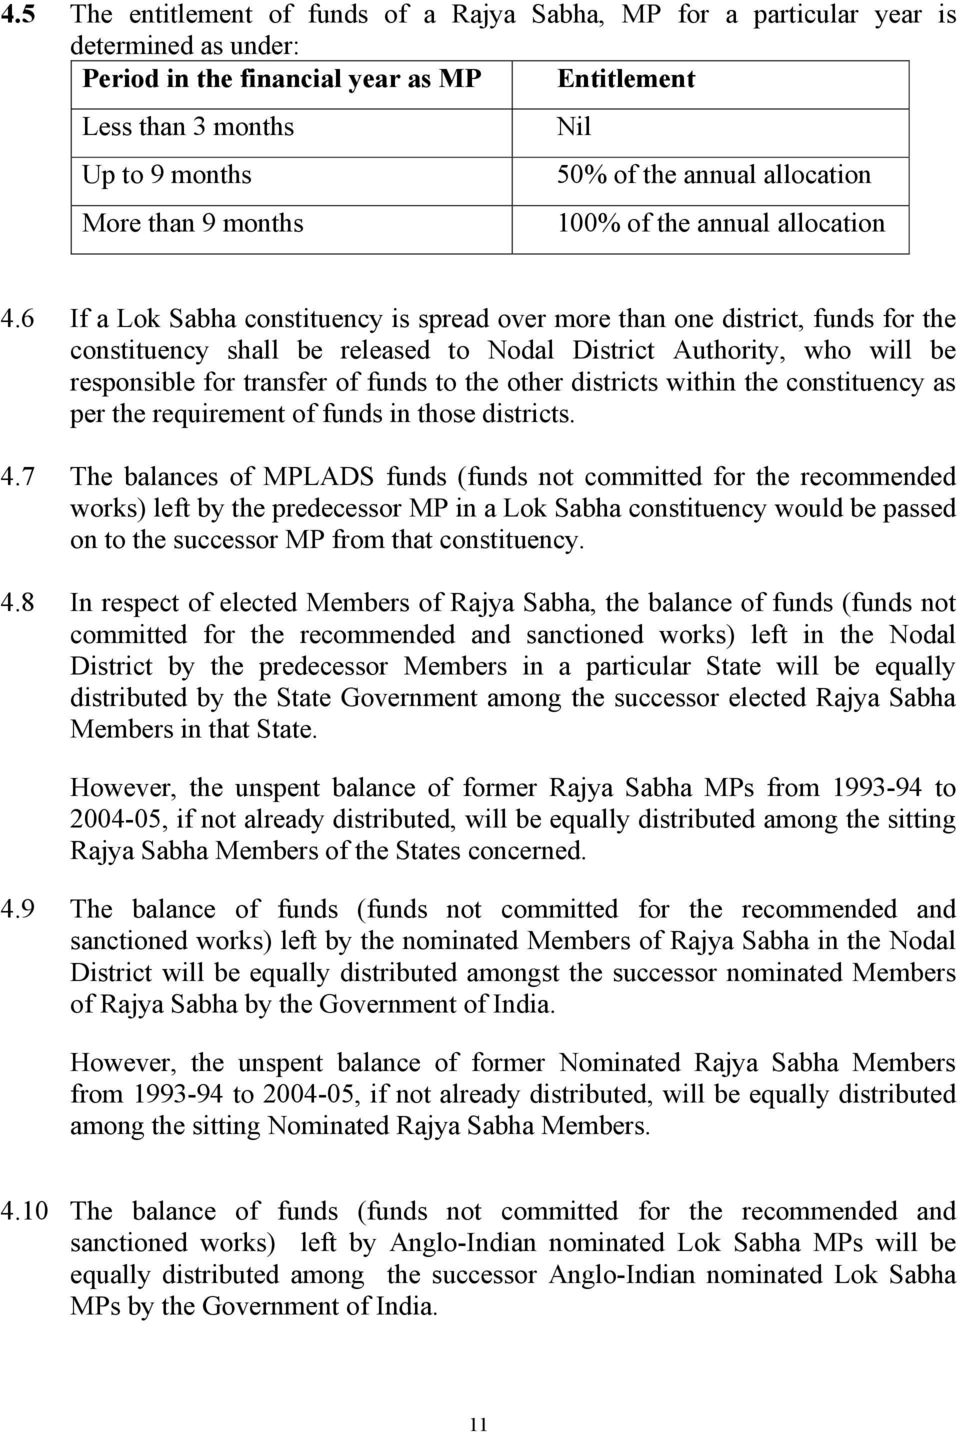 6 If a Lok Sabha constituency is spread over more than one district, funds for the constituency shall be released to Nodal District Authority, who will be responsible for transfer of funds to the